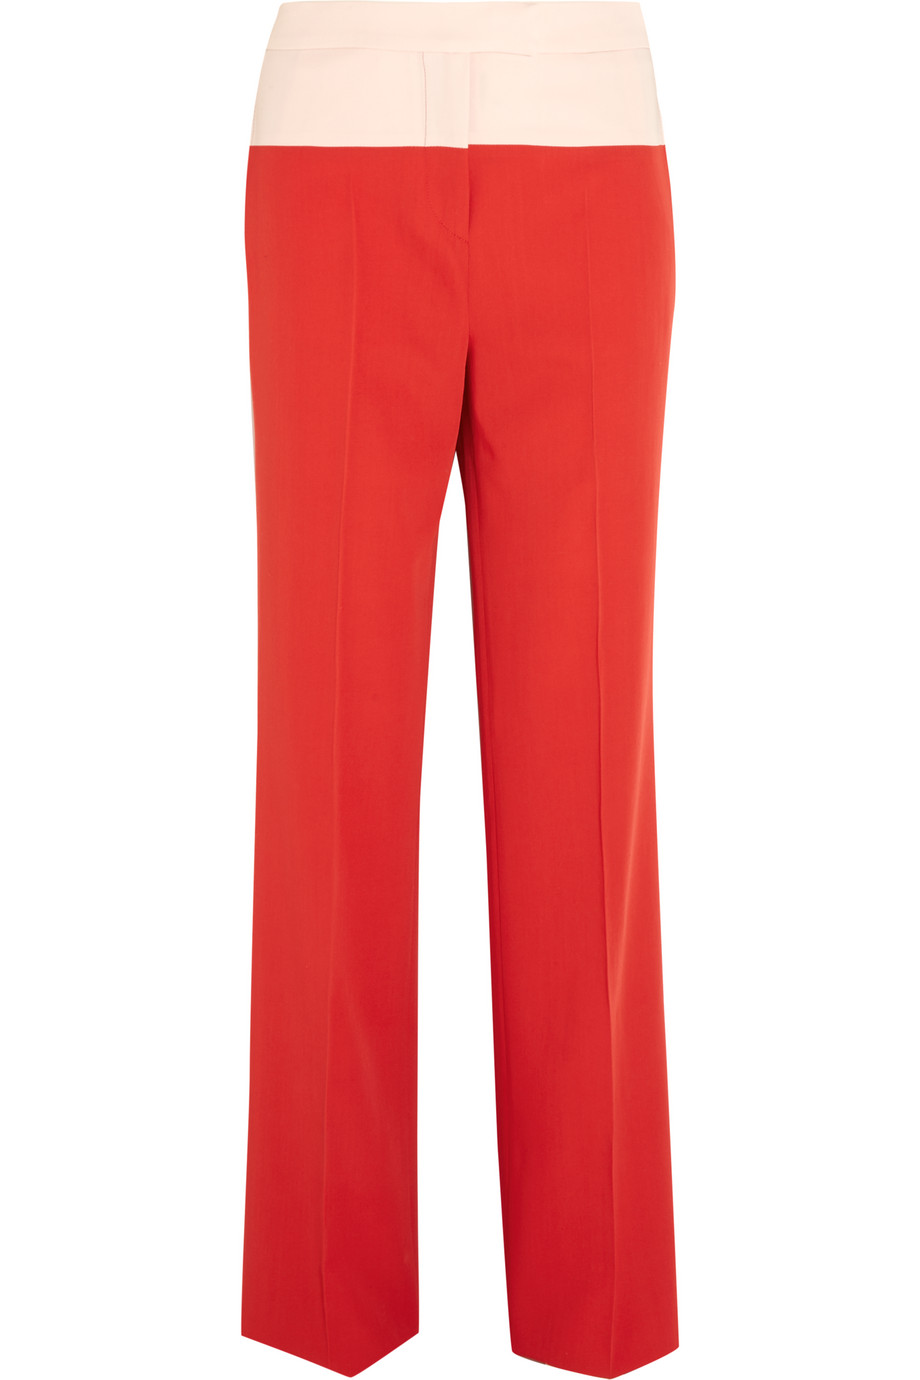 Bottega Veneta Two-Tone Wool-Gabardine Wide-Leg Pants, Red/Pastel Pink, Women's, Size: 38